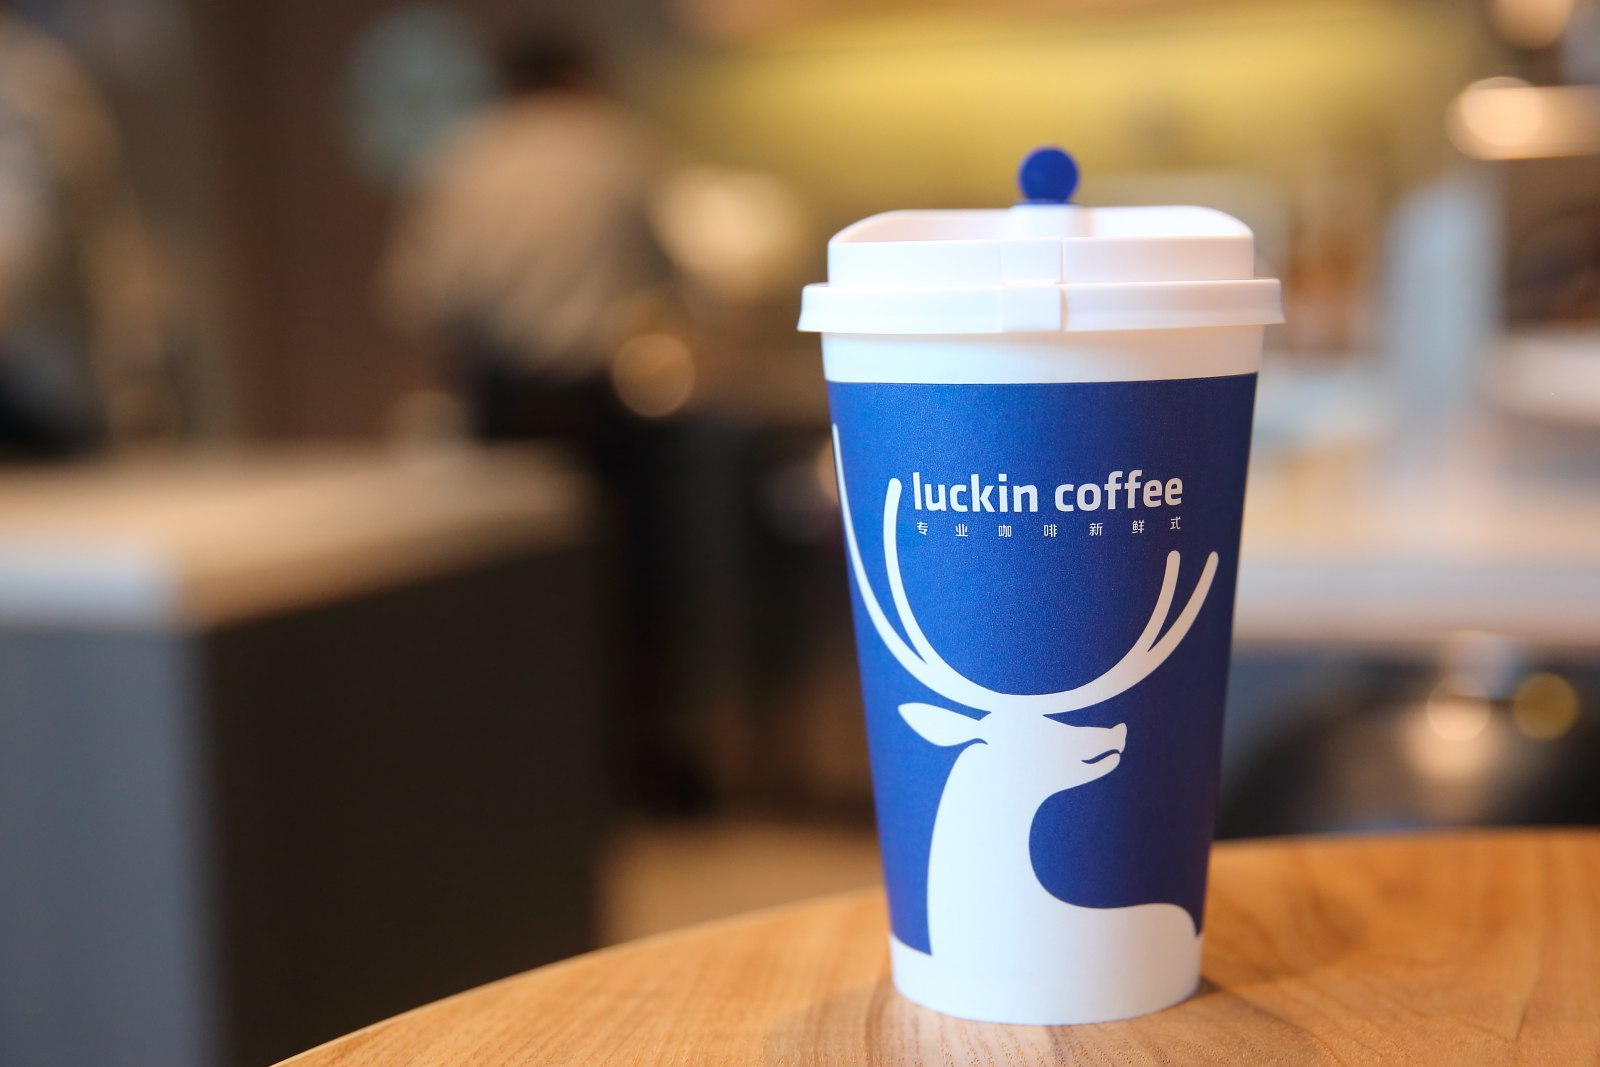 Luckin Coffee - China's answer to Starbuck